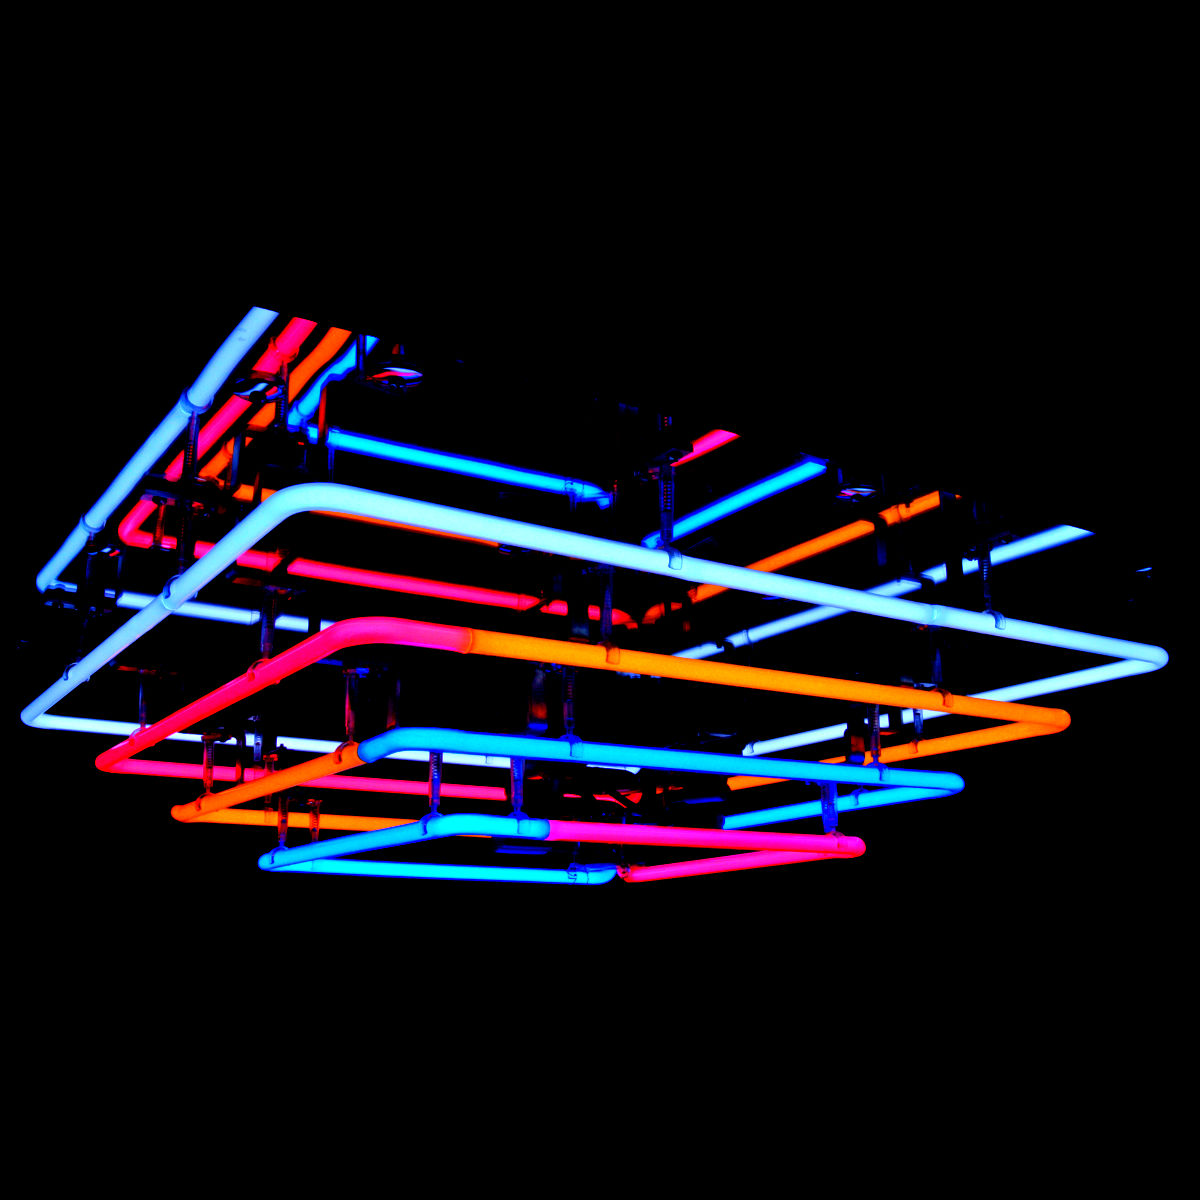 Designer Custom Neon Light Fixtures by John Barton - BartonNeonMagic.com